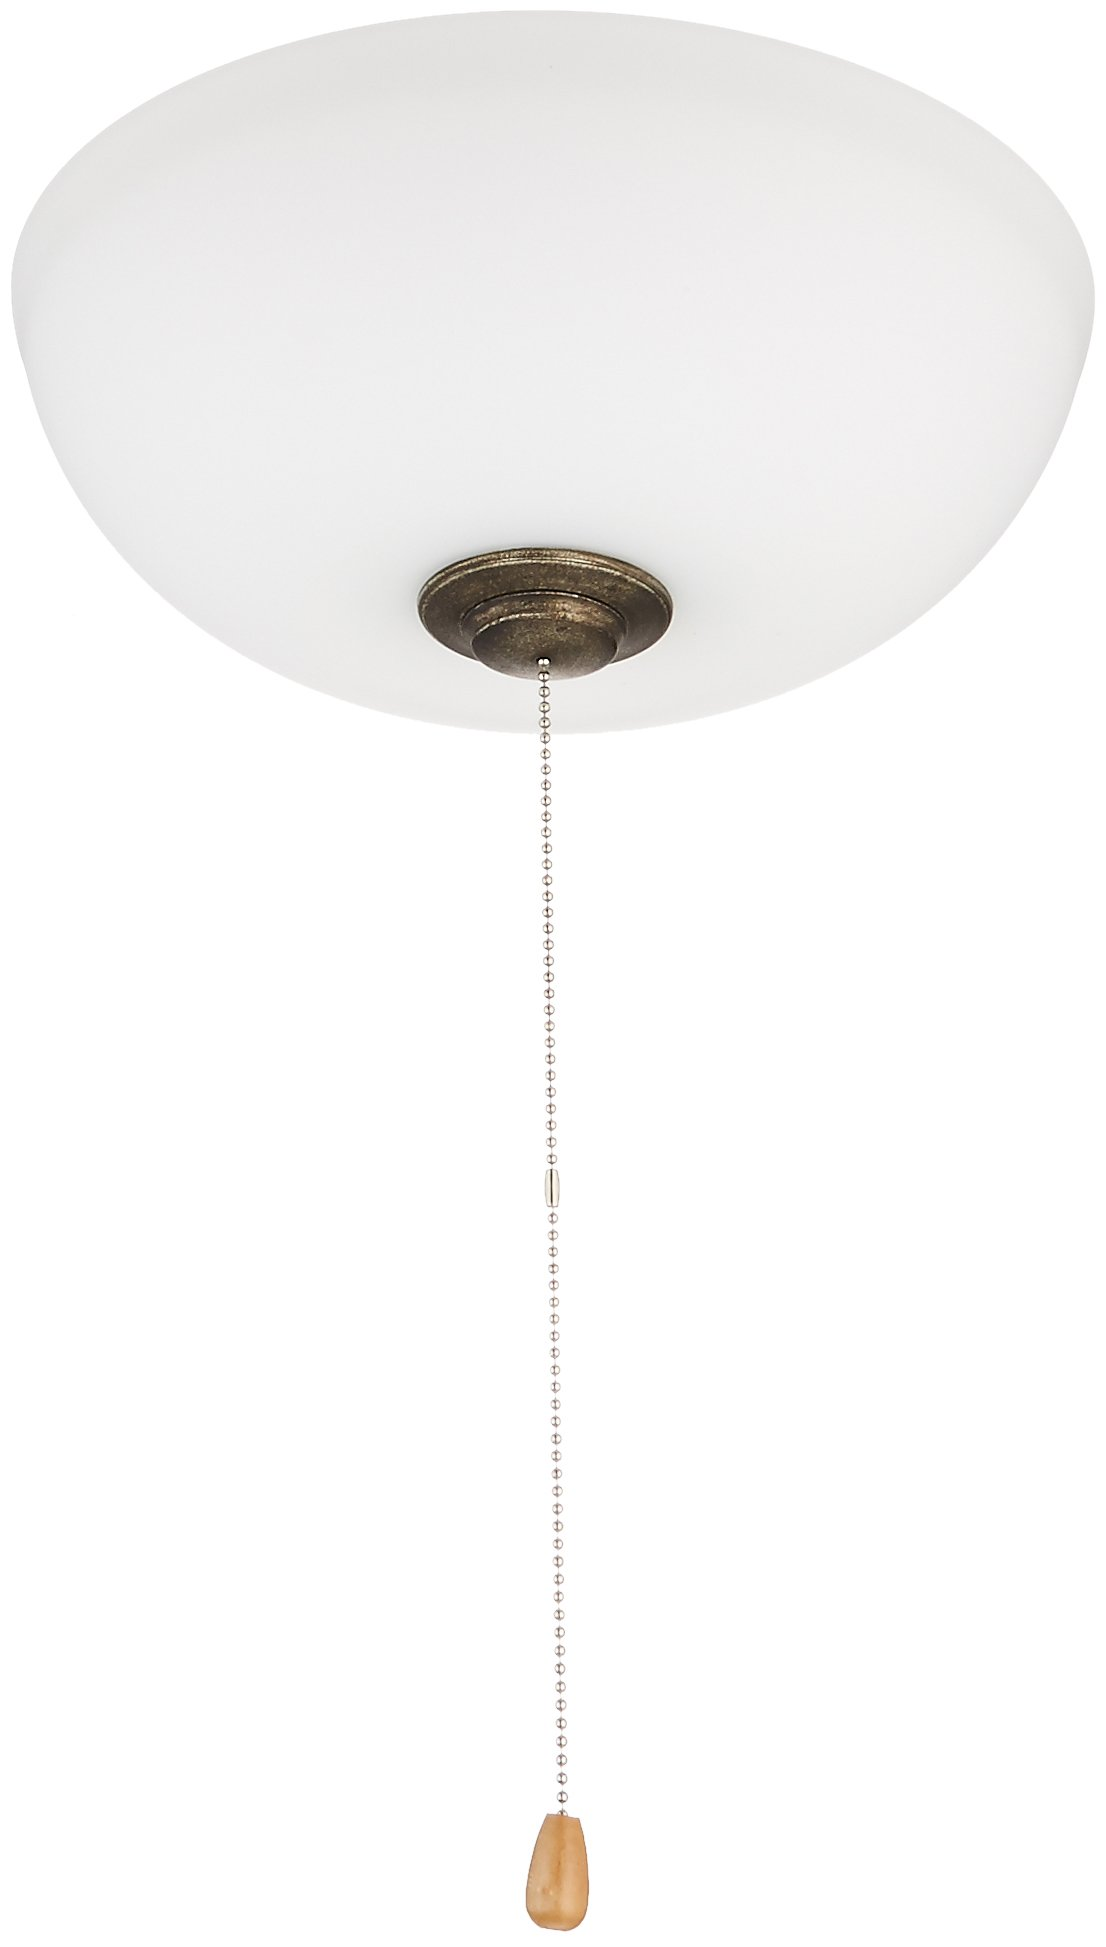 Emerson Ceiling Fans LK150OMVS Harlow Opal Matte Low Profile Ceiling Fan Light Fixture